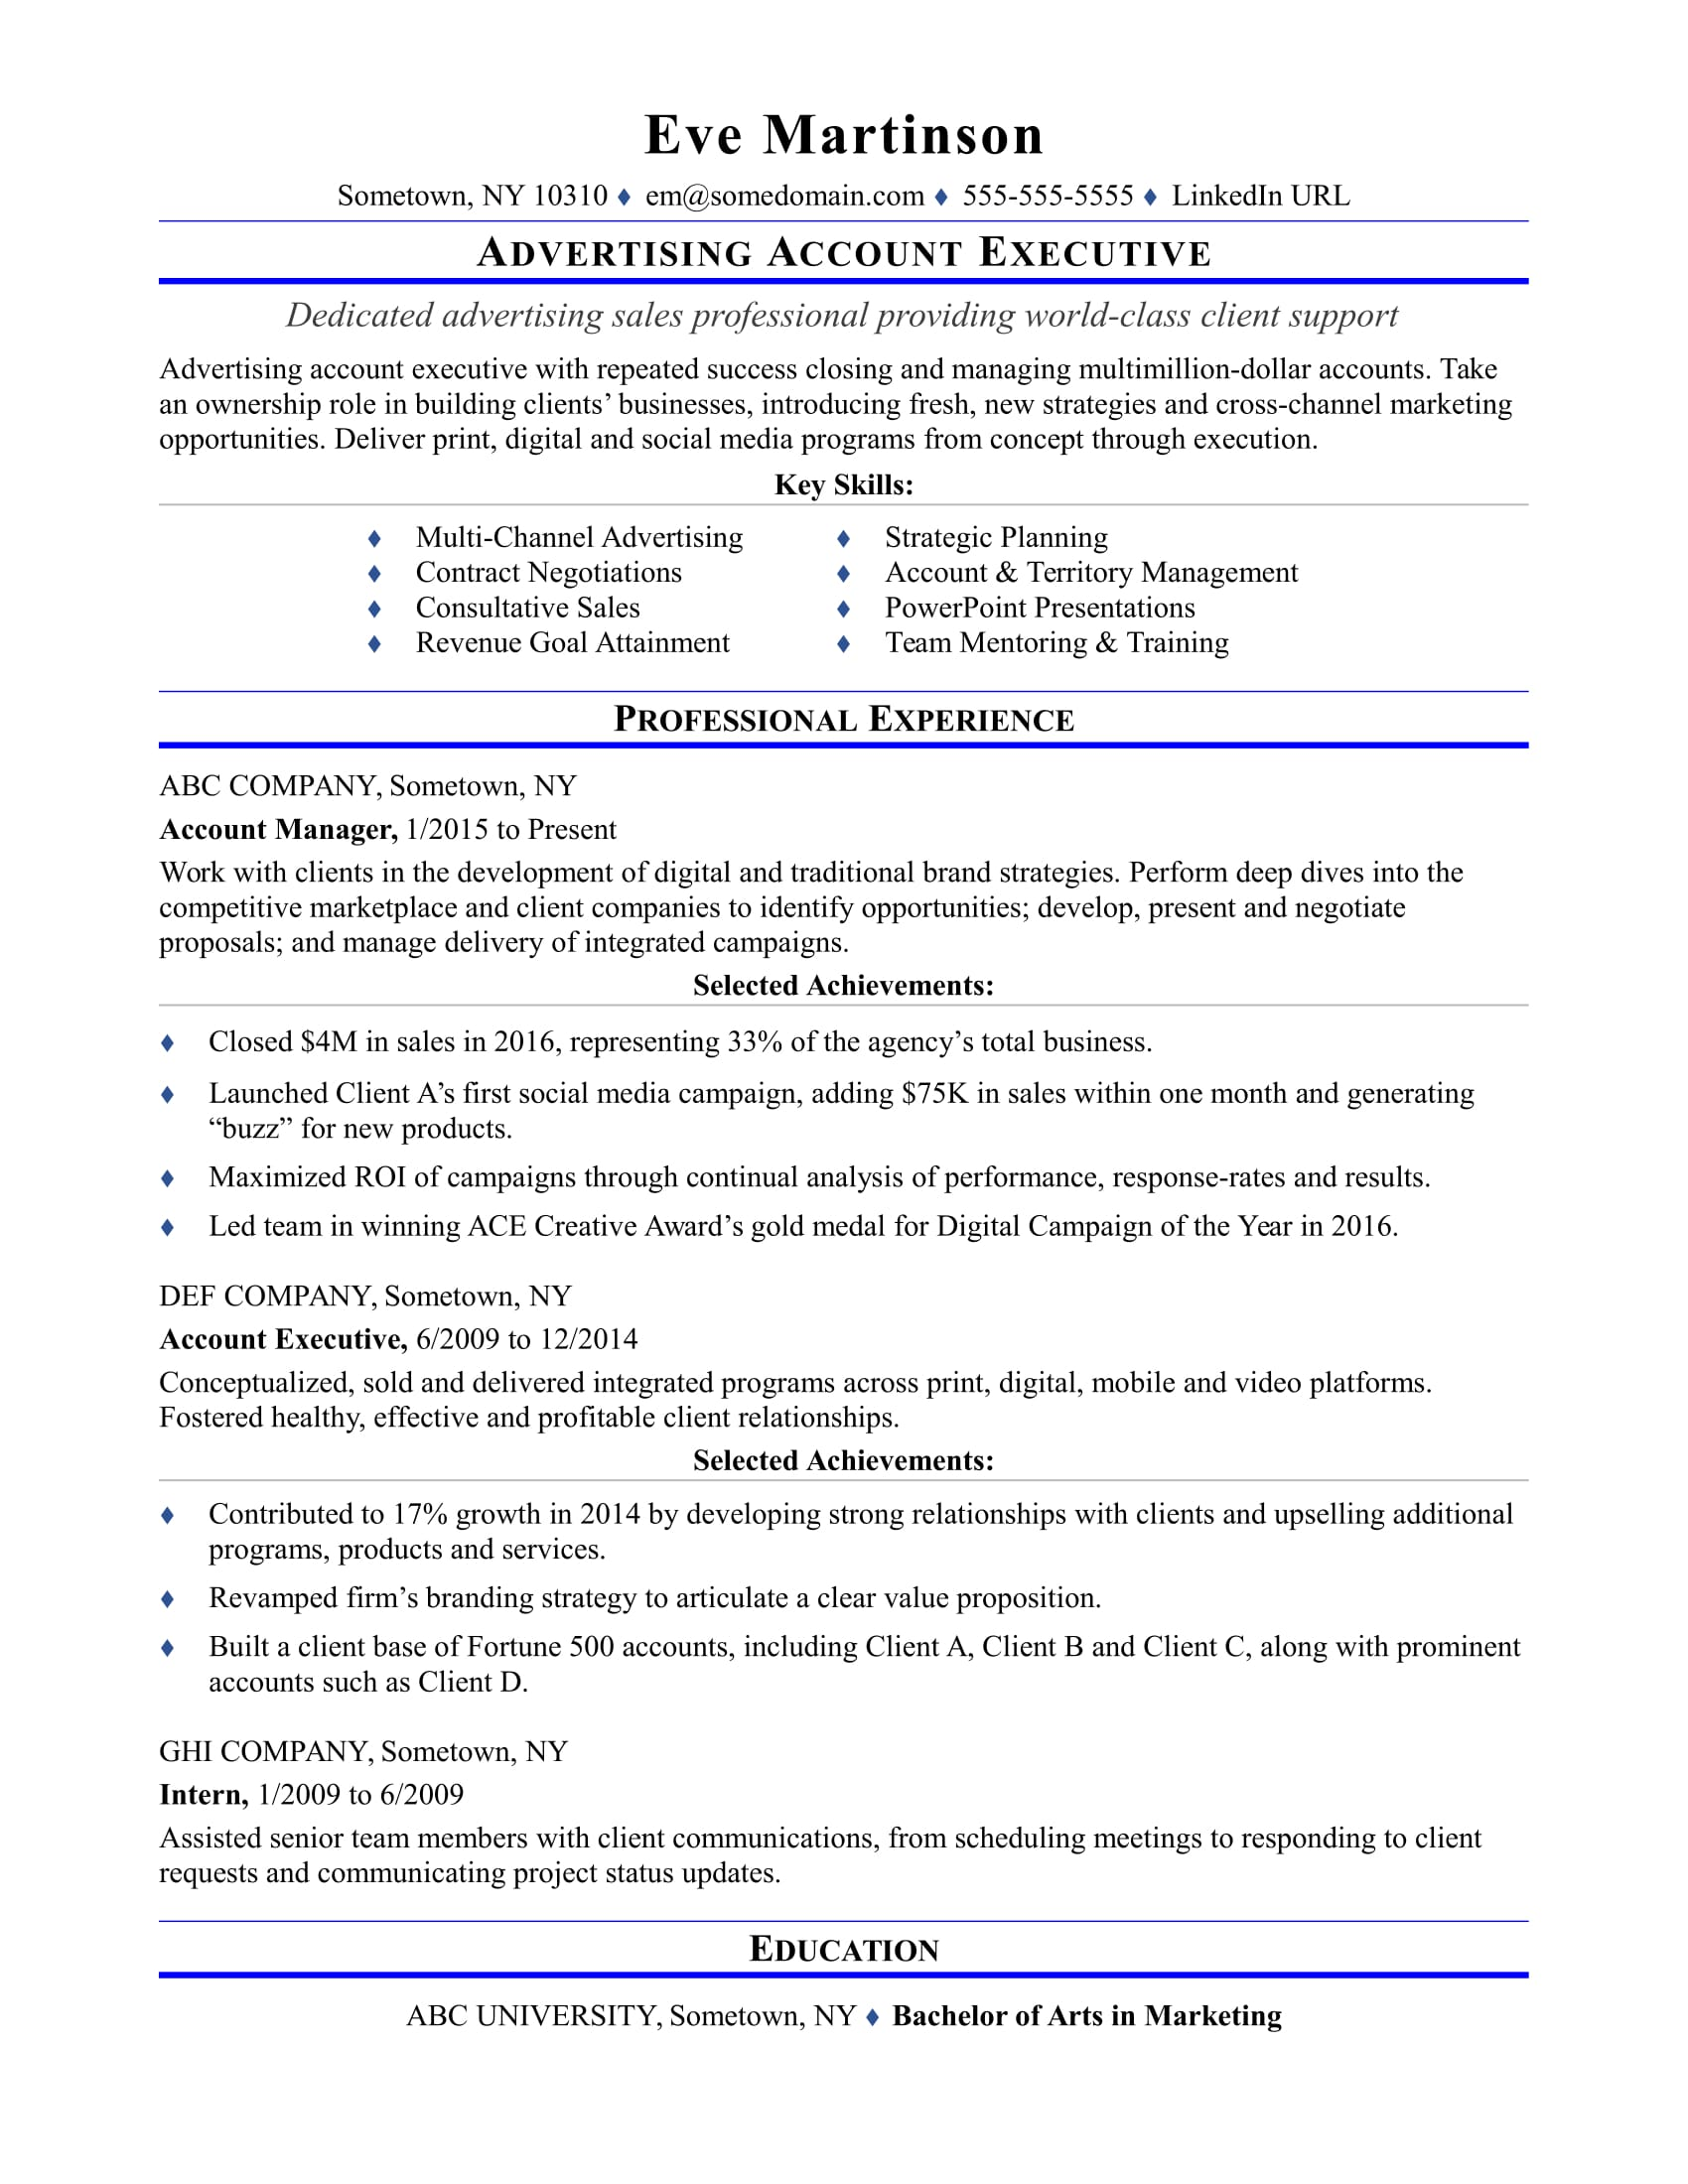 sample resume for an advertising account executive monster manager keywords backend Resume Account Manager Resume Keywords